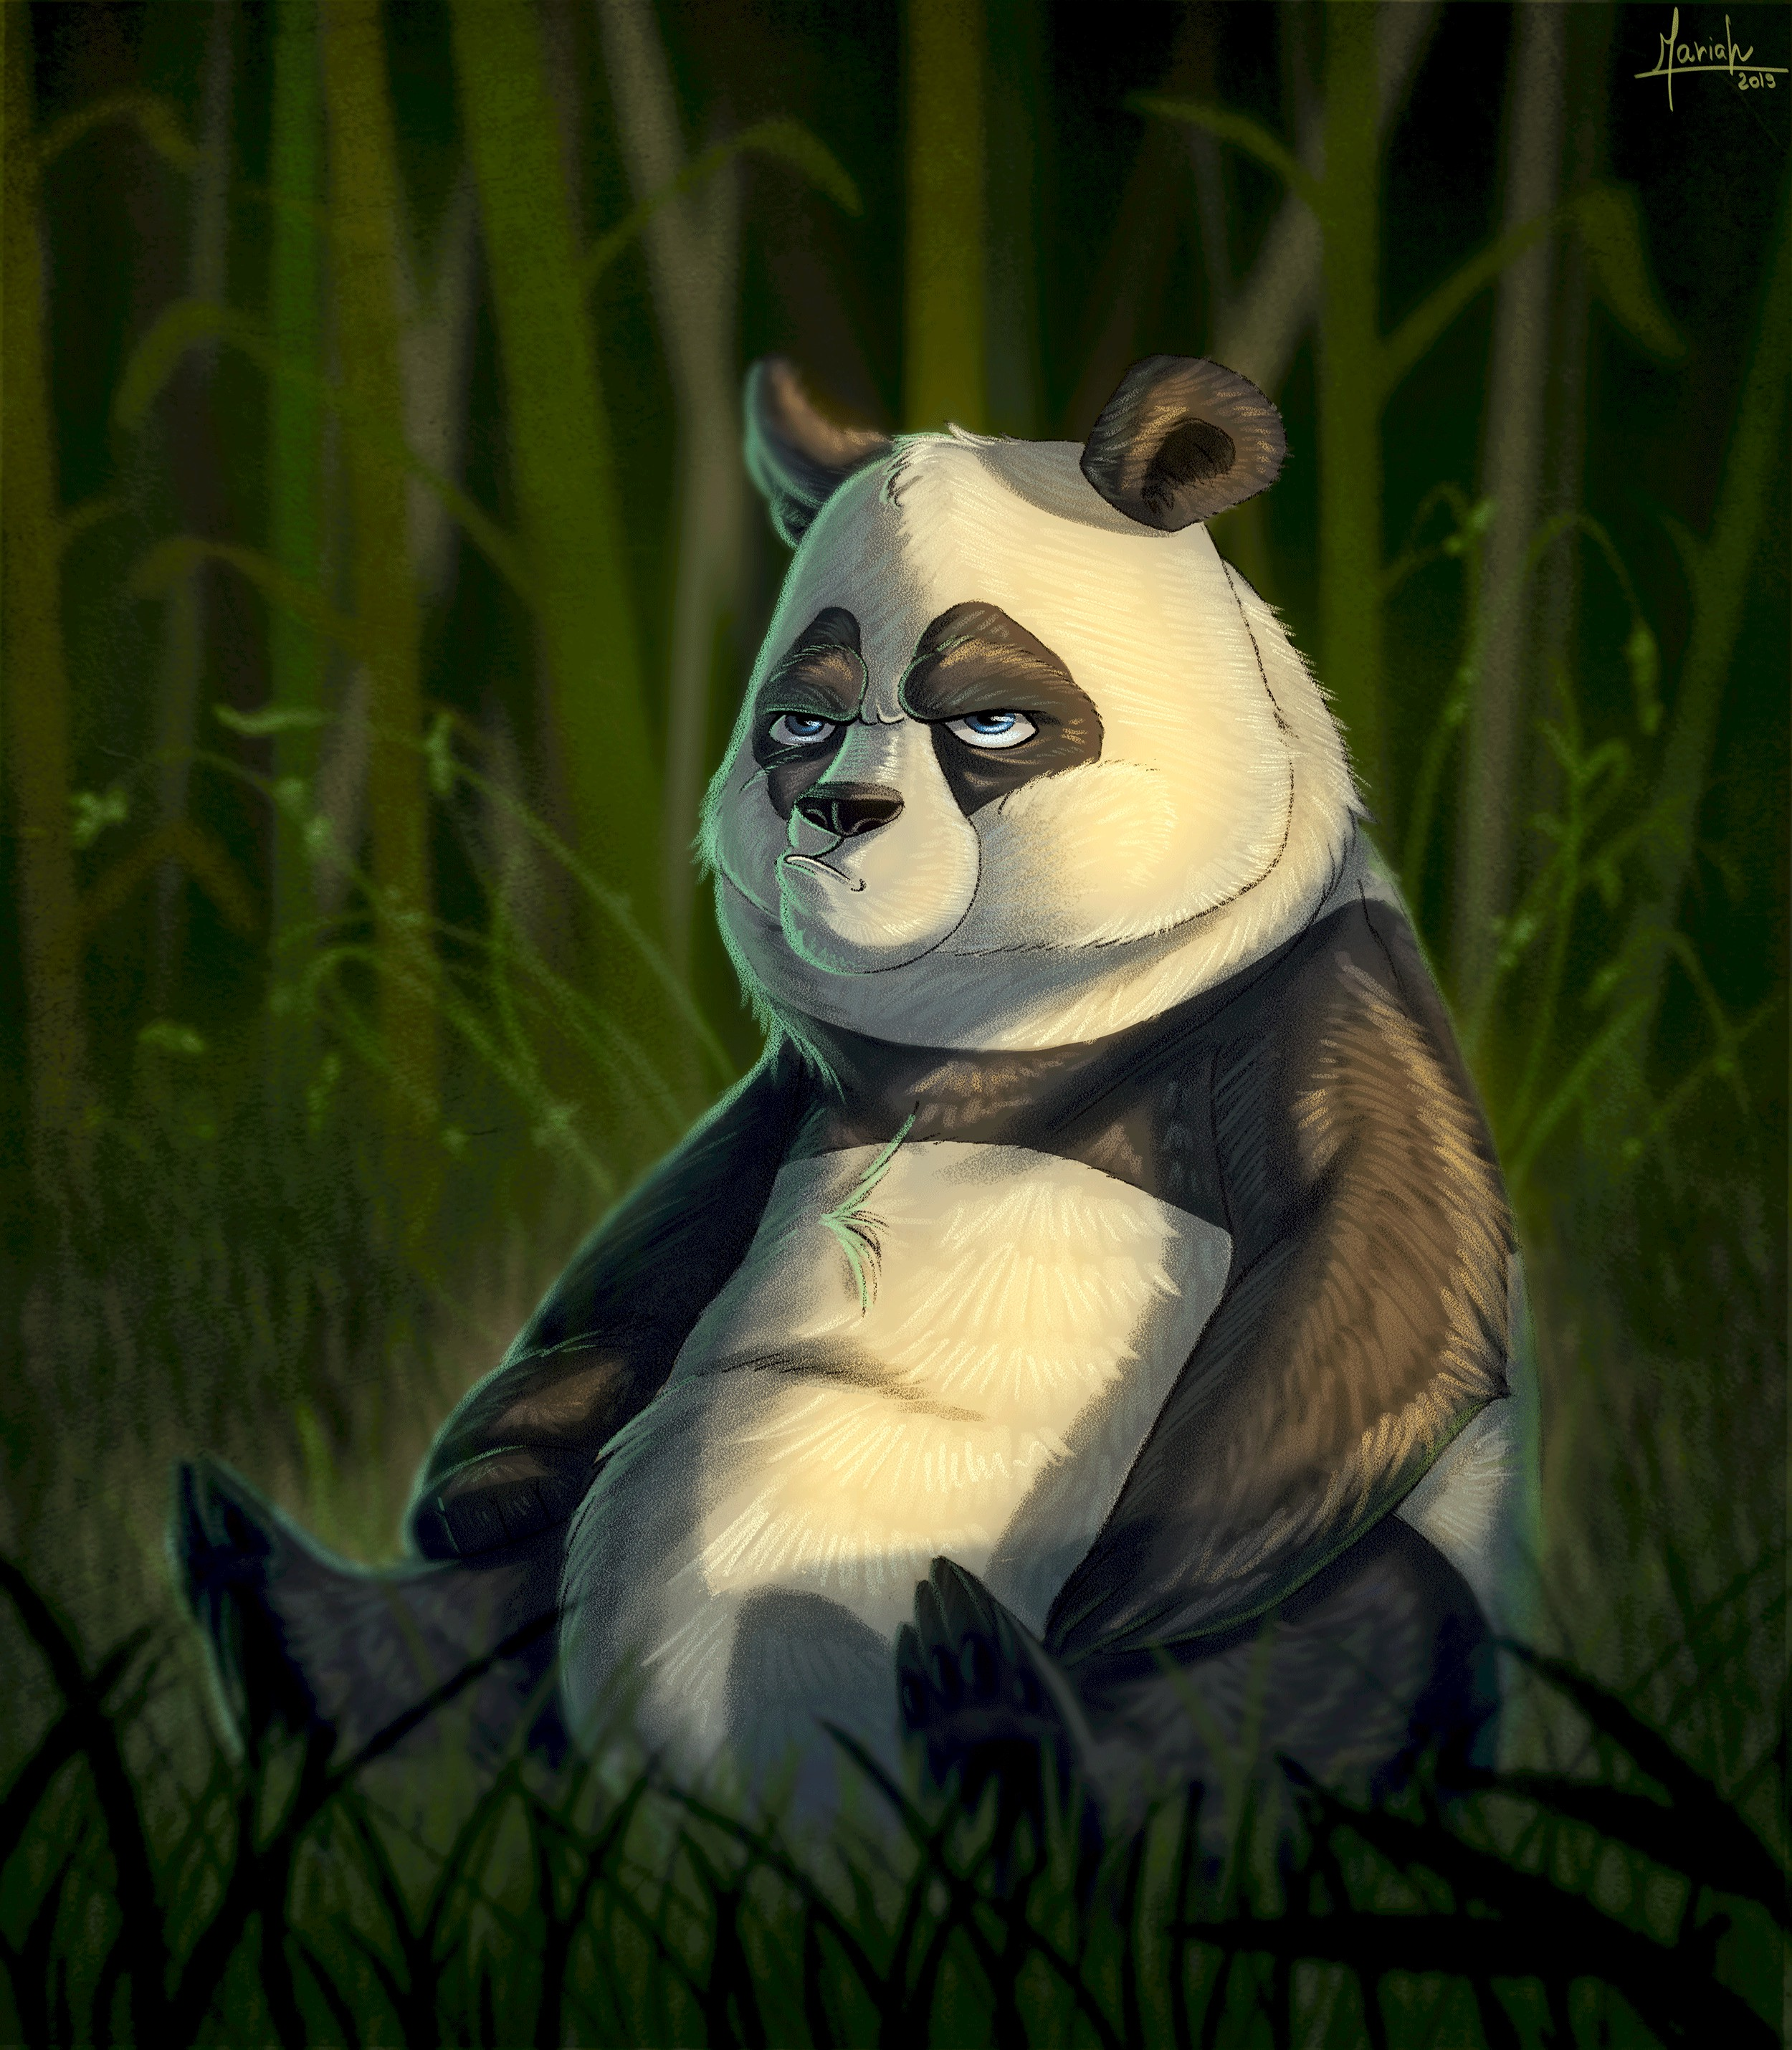 109883 download wallpaper Art, Bear, Panda, Emotions, Dissatisfaction, Discontent screensavers and pictures for free